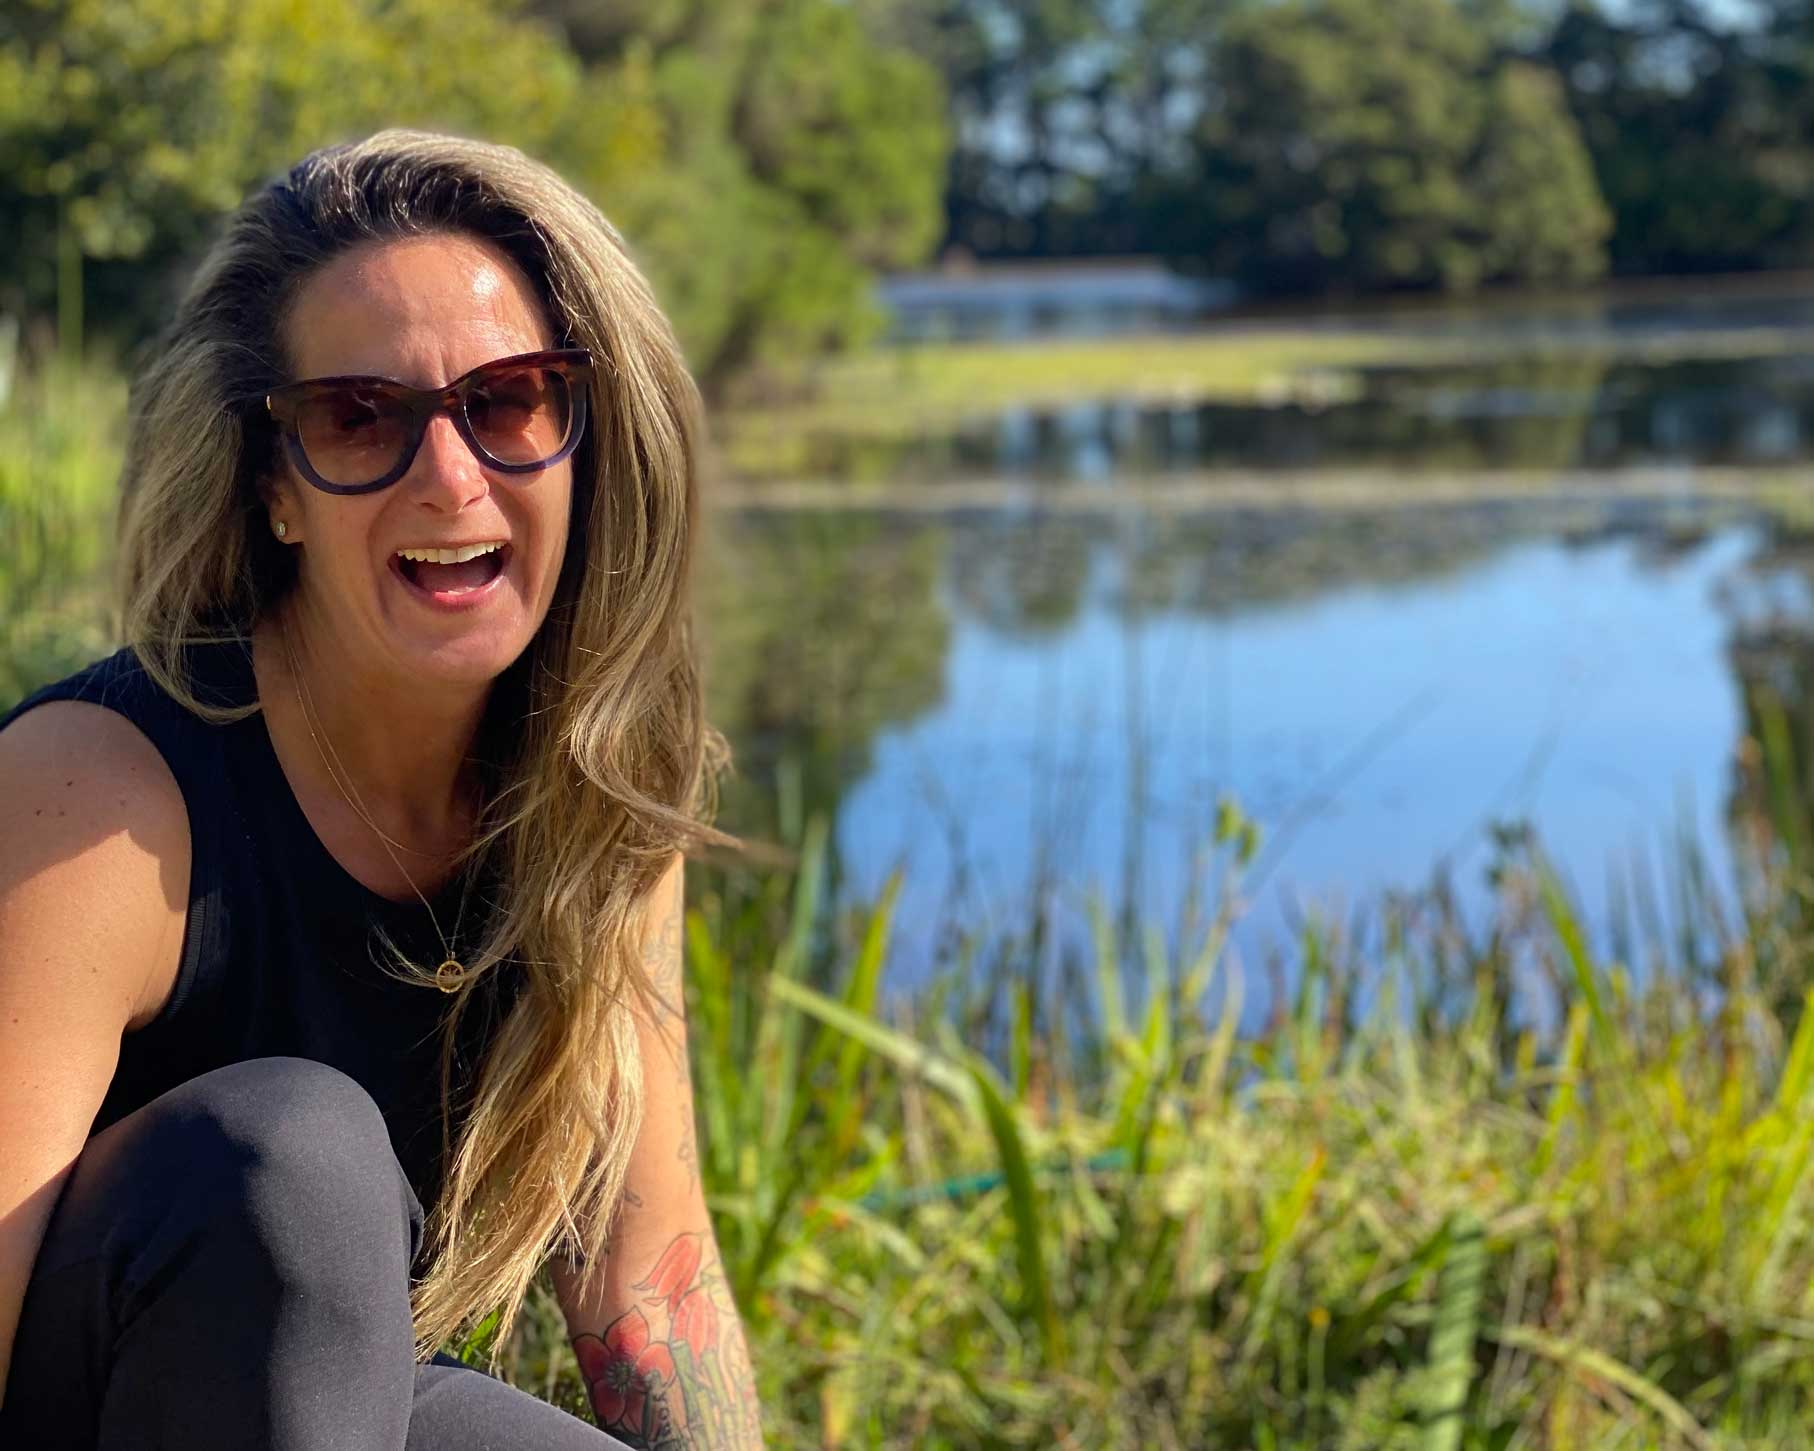 Melbourne Meditation Teacher Shares her story As a The Non-Believer